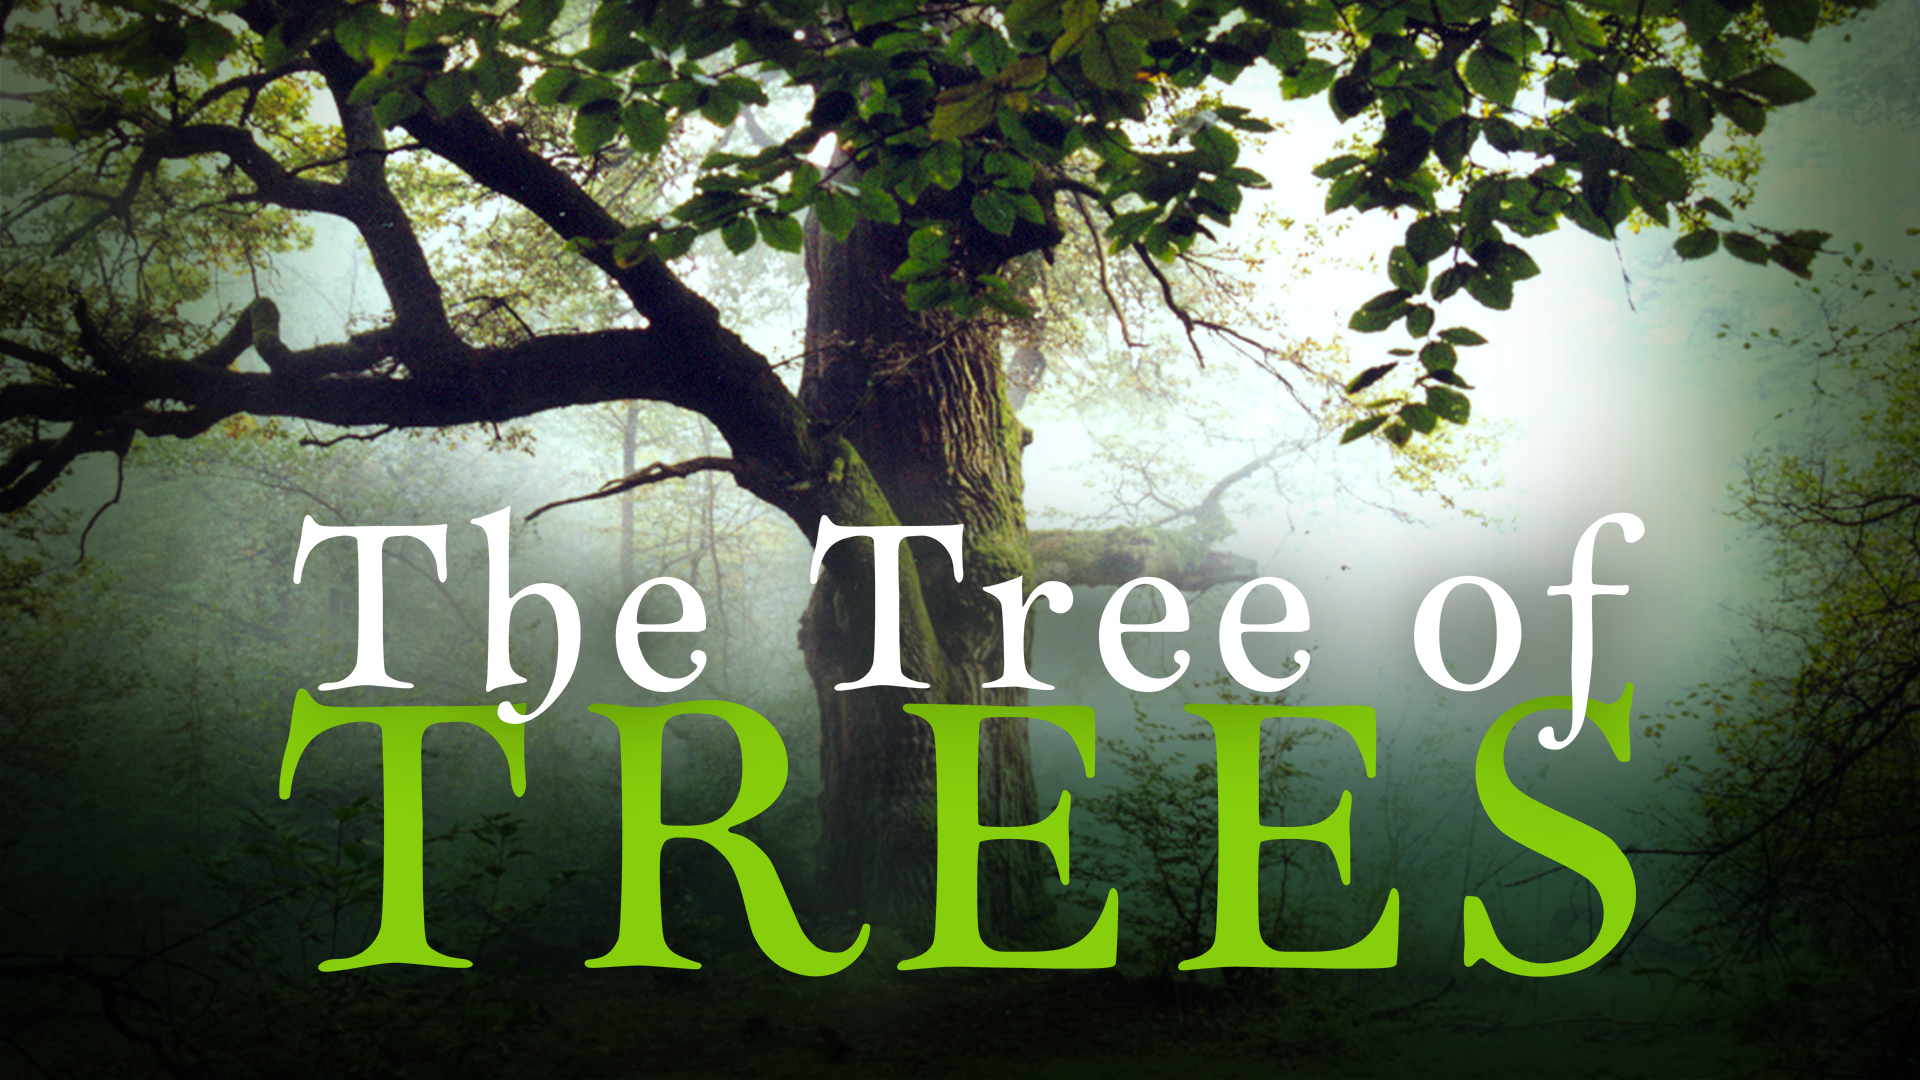 The Tree of Trees